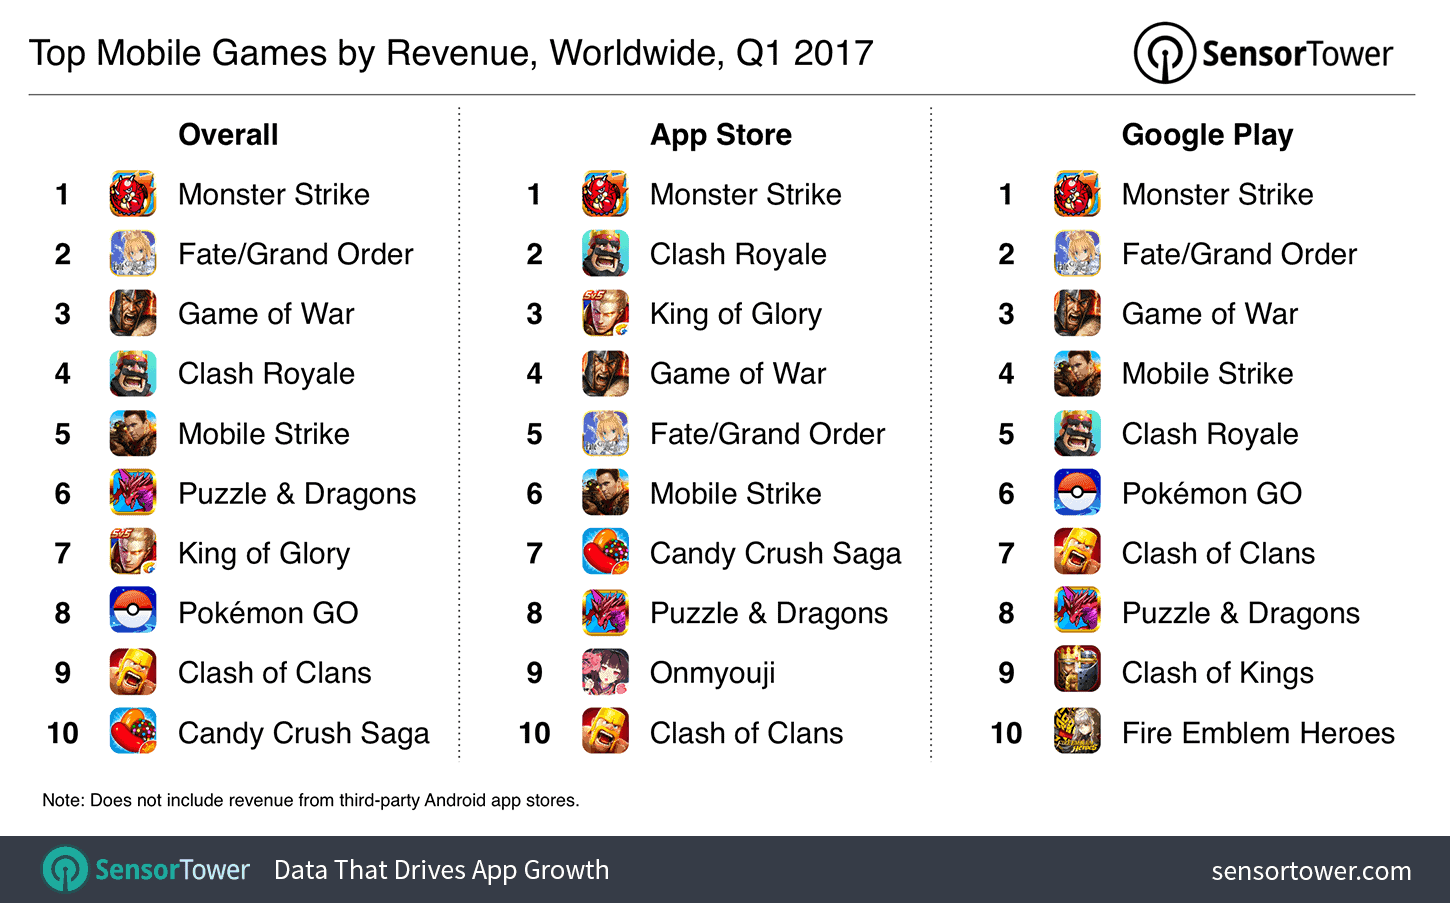 q1 2017 top mobile games by revenue